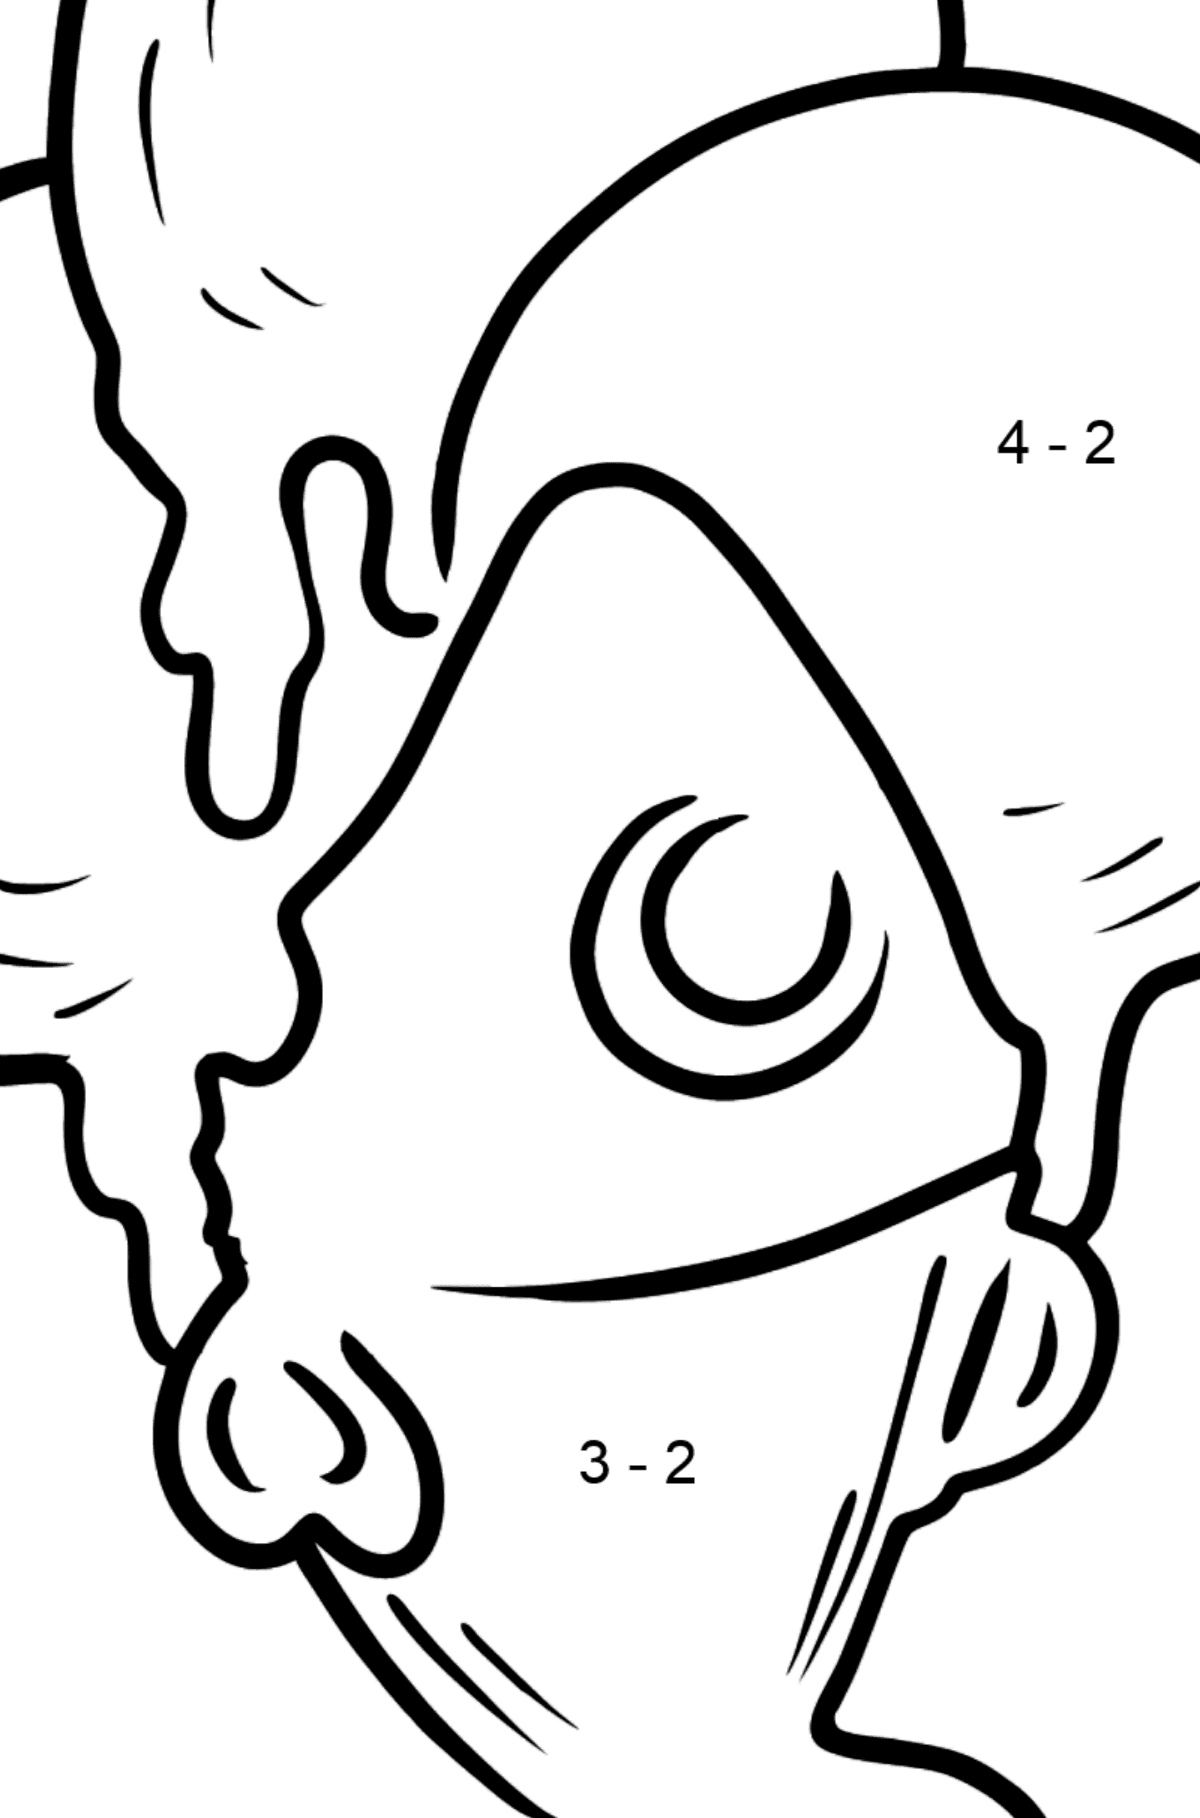 Bubble Gum Ice Cream coloring page - Math Coloring - Subtraction for Kids